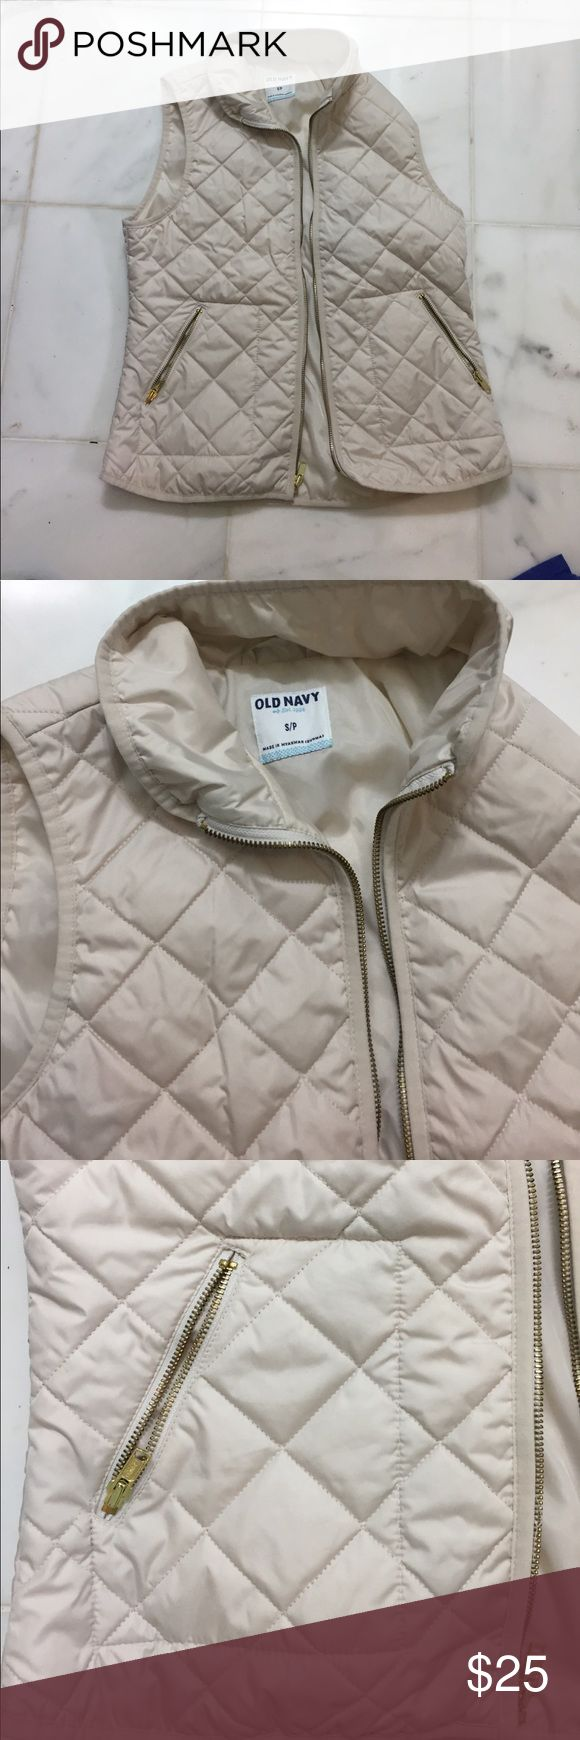 🆕 Old navy ivory quilted vest 🆕 newly listed!!  Worn twice in excellent condition. Smoke free home Old Navy Jackets & Coats Vests